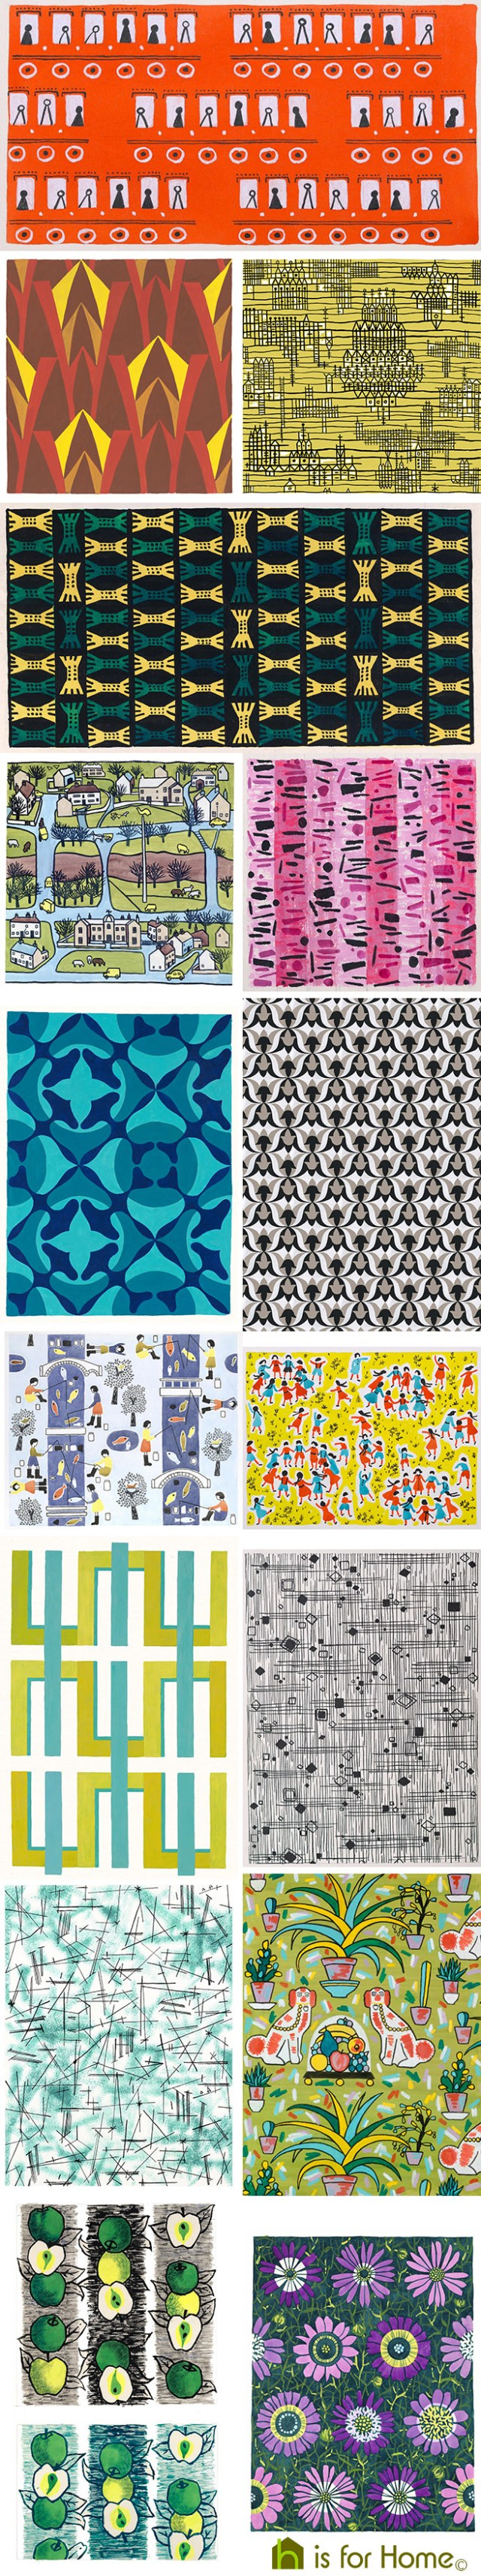 Mosaic of Sheila Bownas textile designs | H is for Home